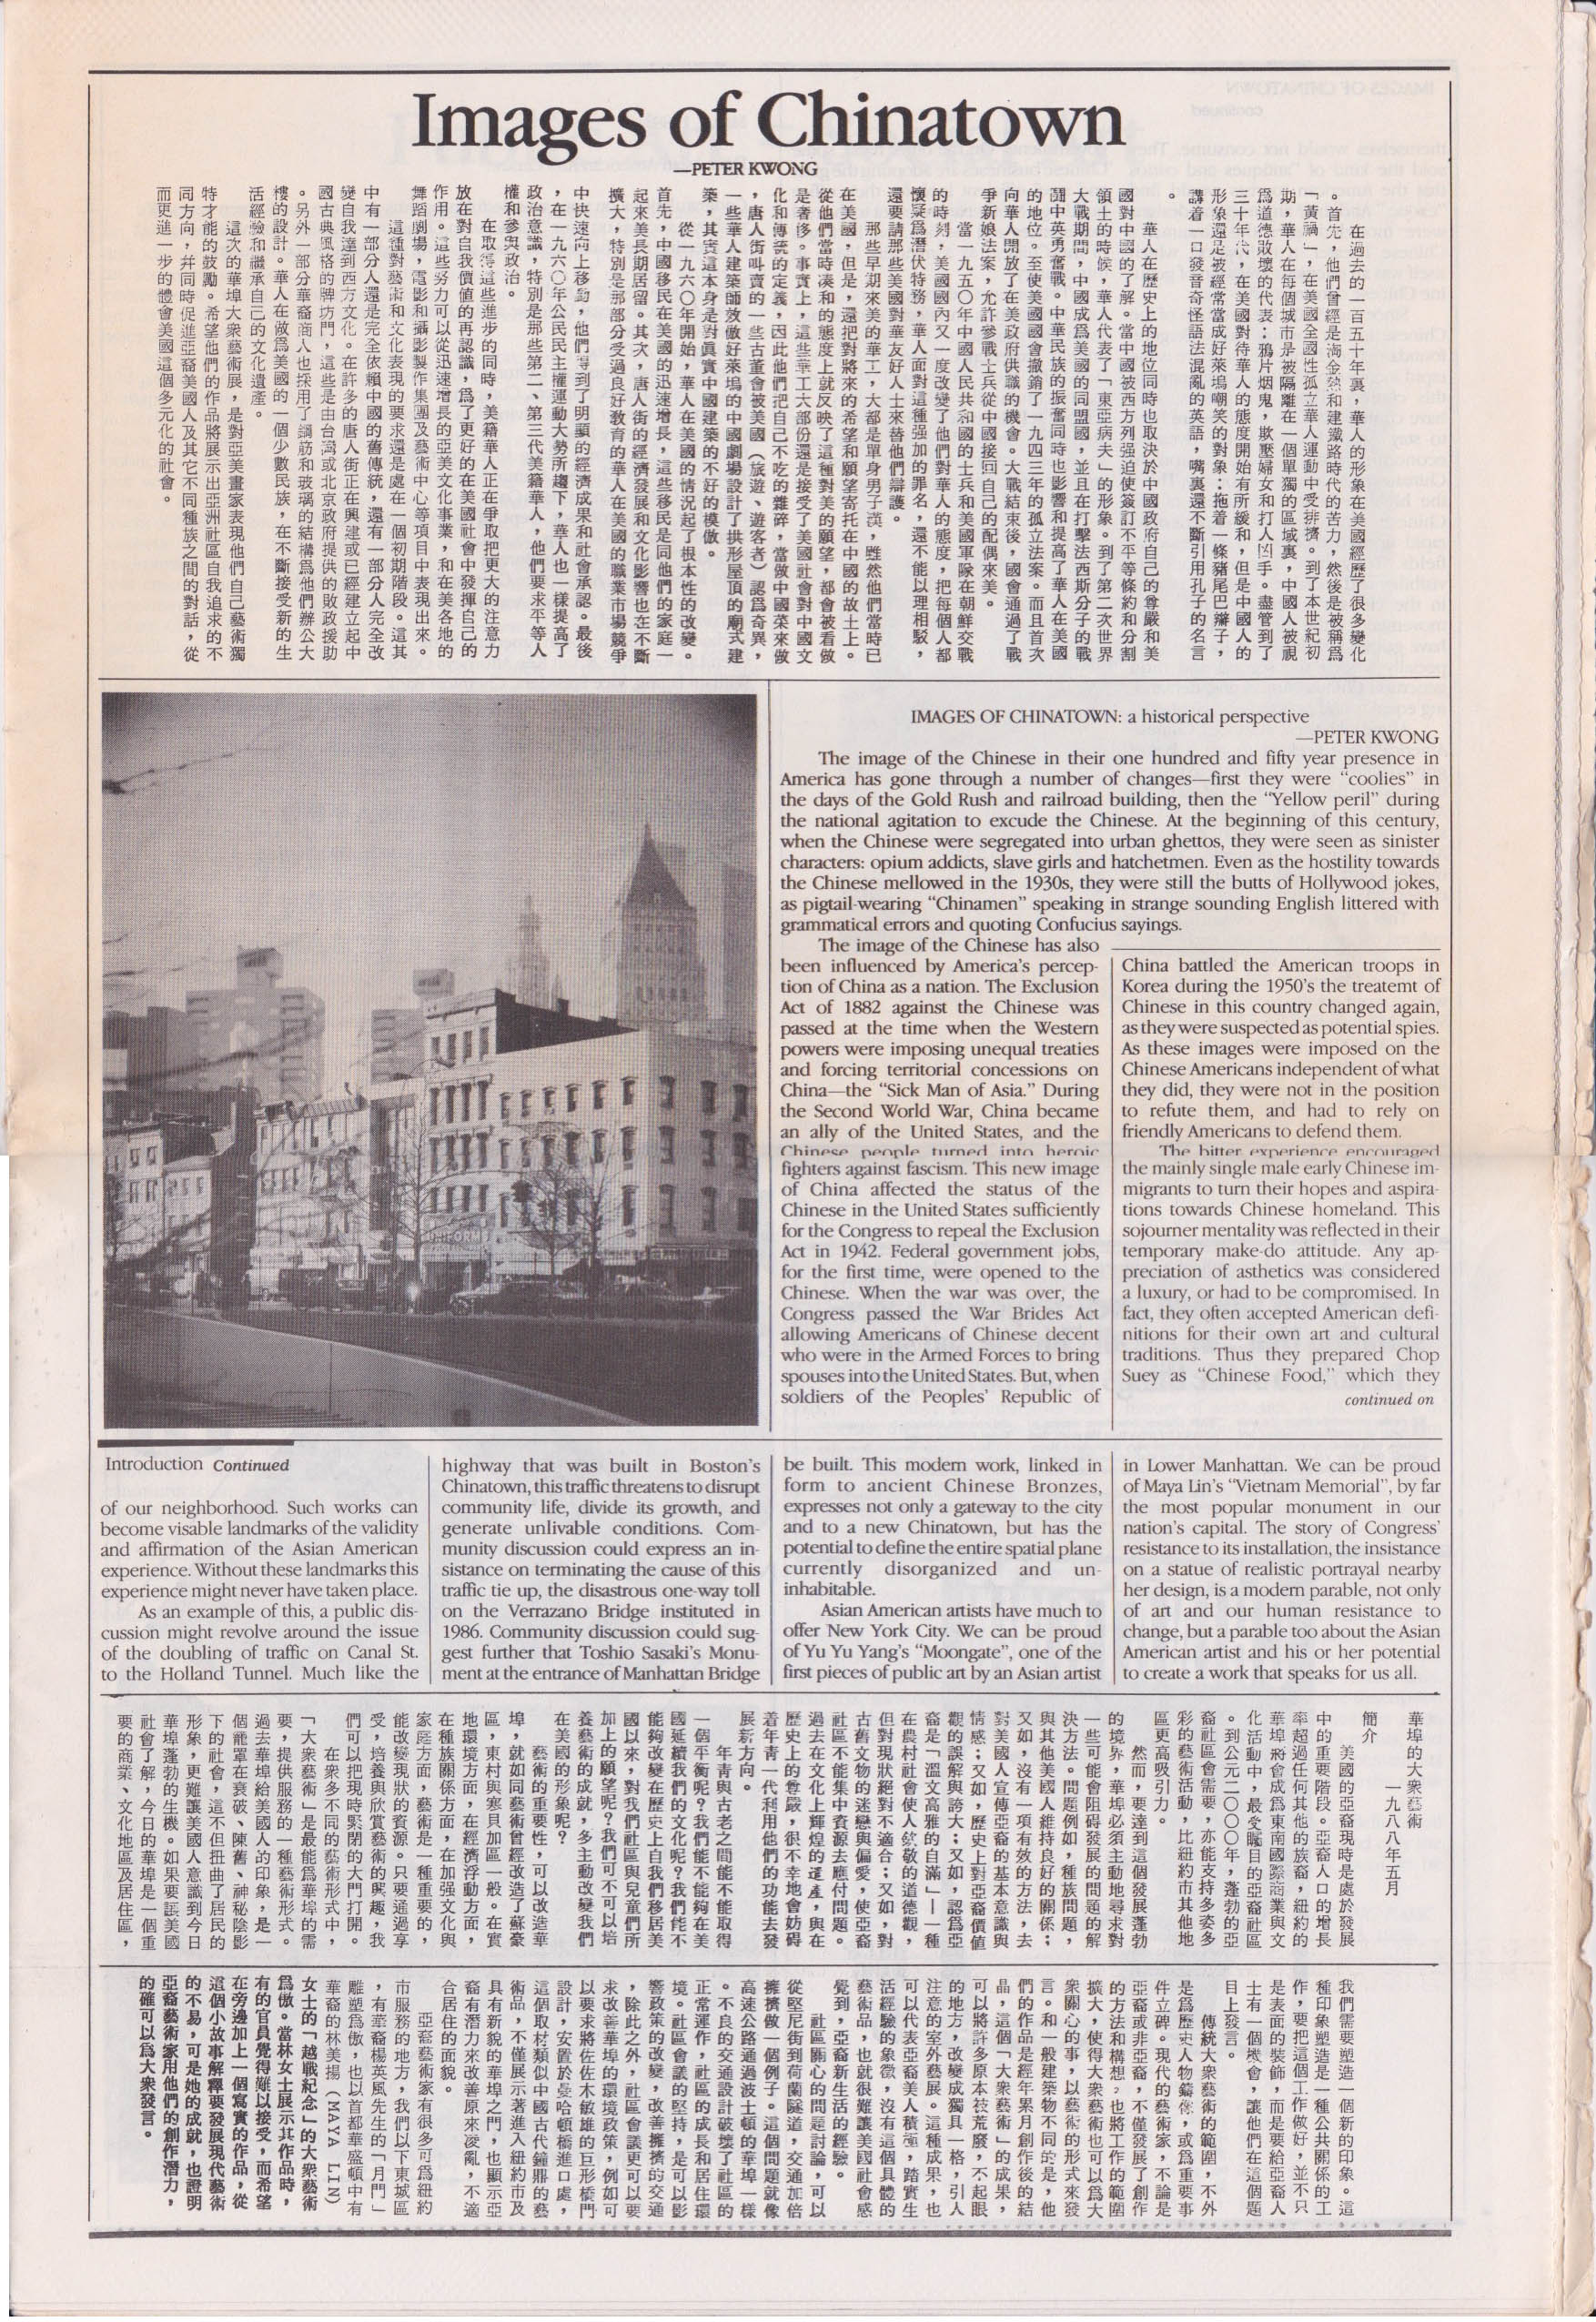 Images of Chinatown